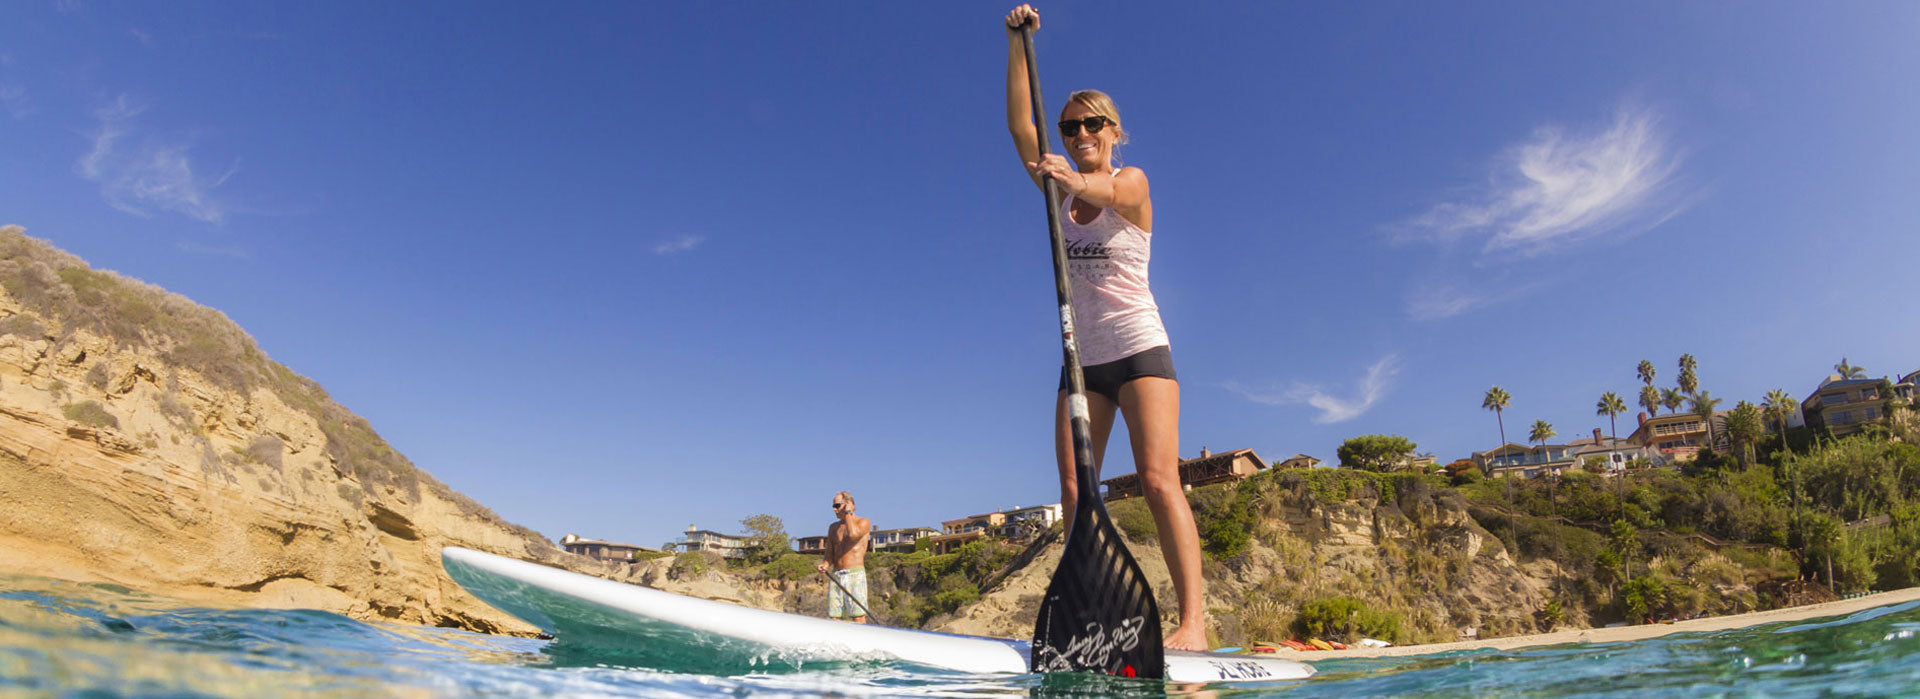 Hobie Stand Up Paddle Boards